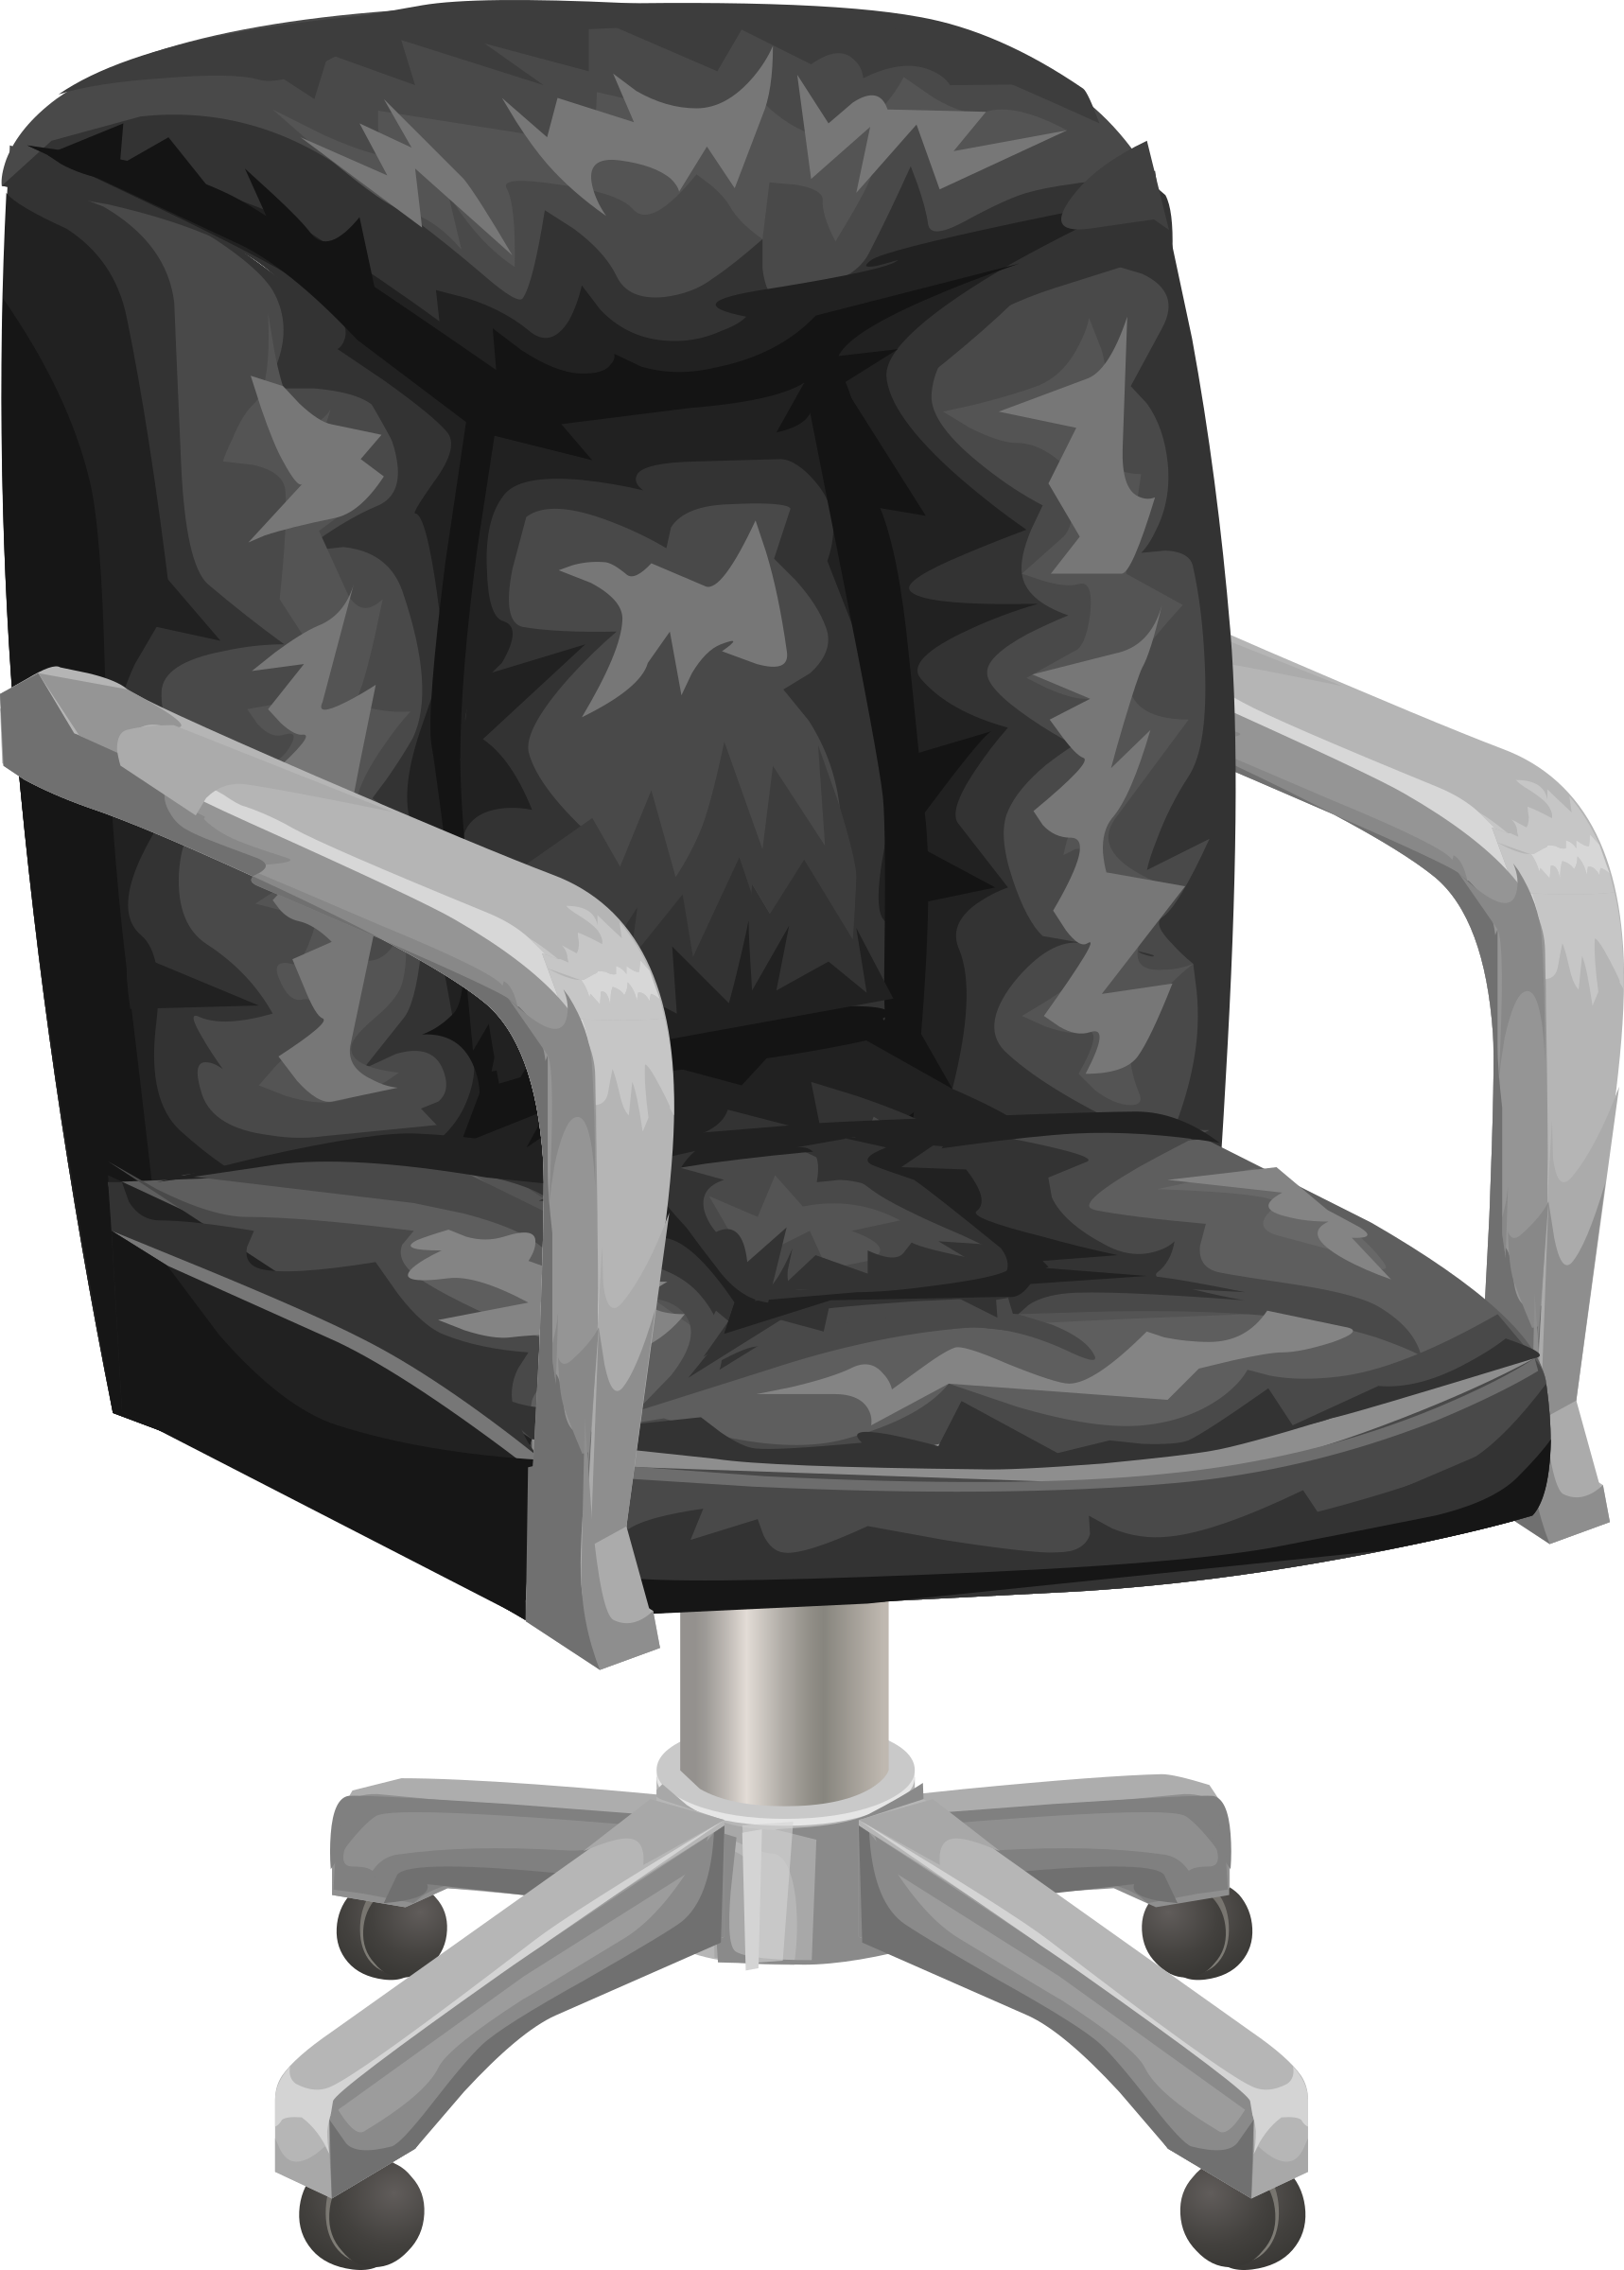 Clipart desk desk chair. Black office from glitch